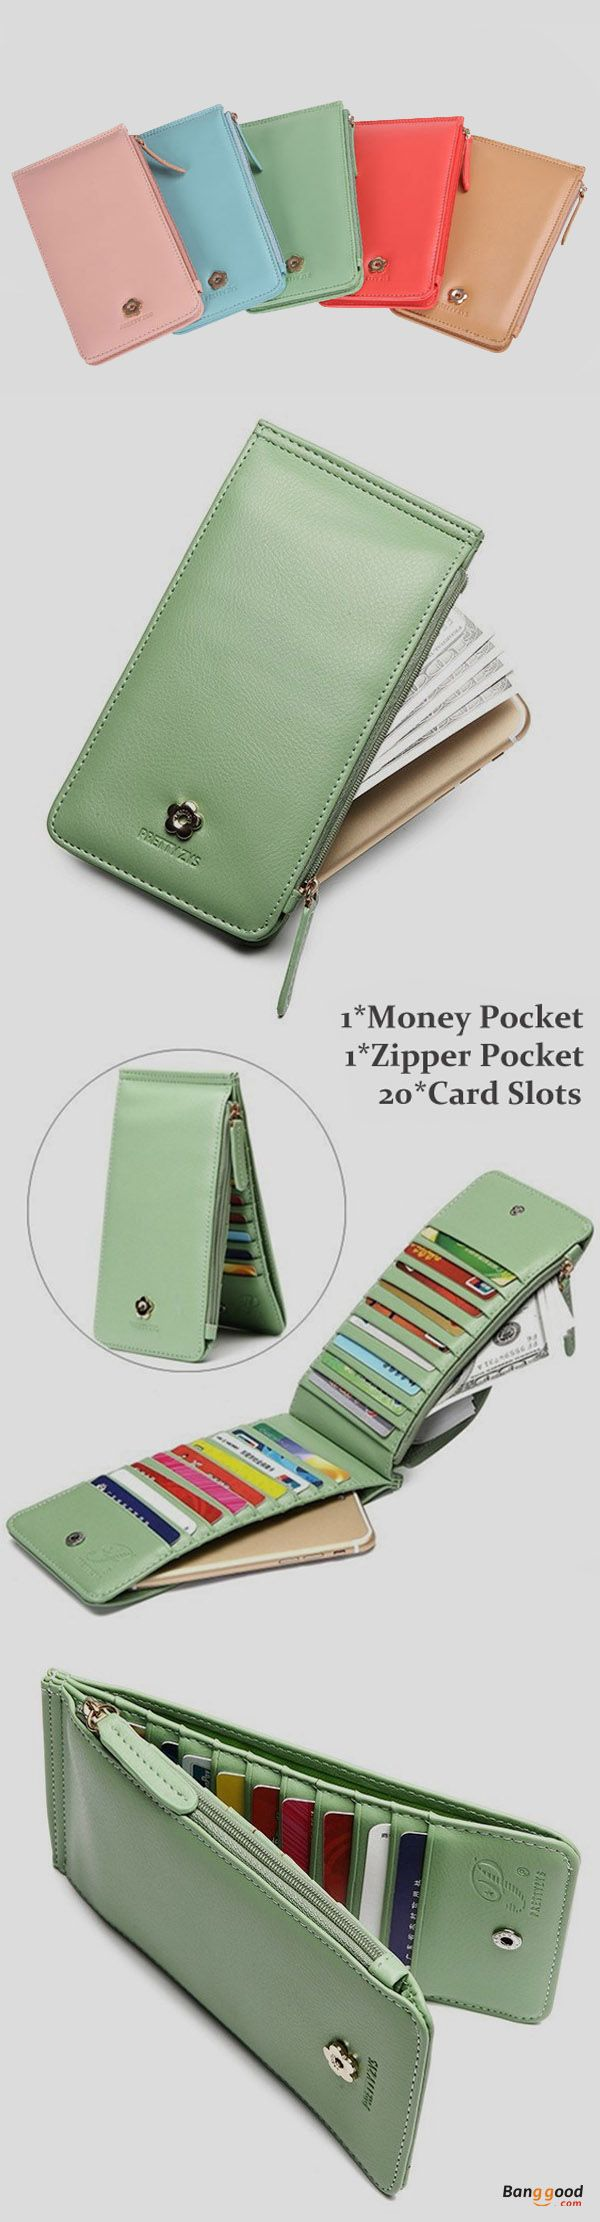 US$10.89+Free shipping. Women's Purse, Long Purse, Phone Wallets, Hasp 20 Card Holder. Color: Black, Blue, Beige, Watermelon Red, Pink, Green.